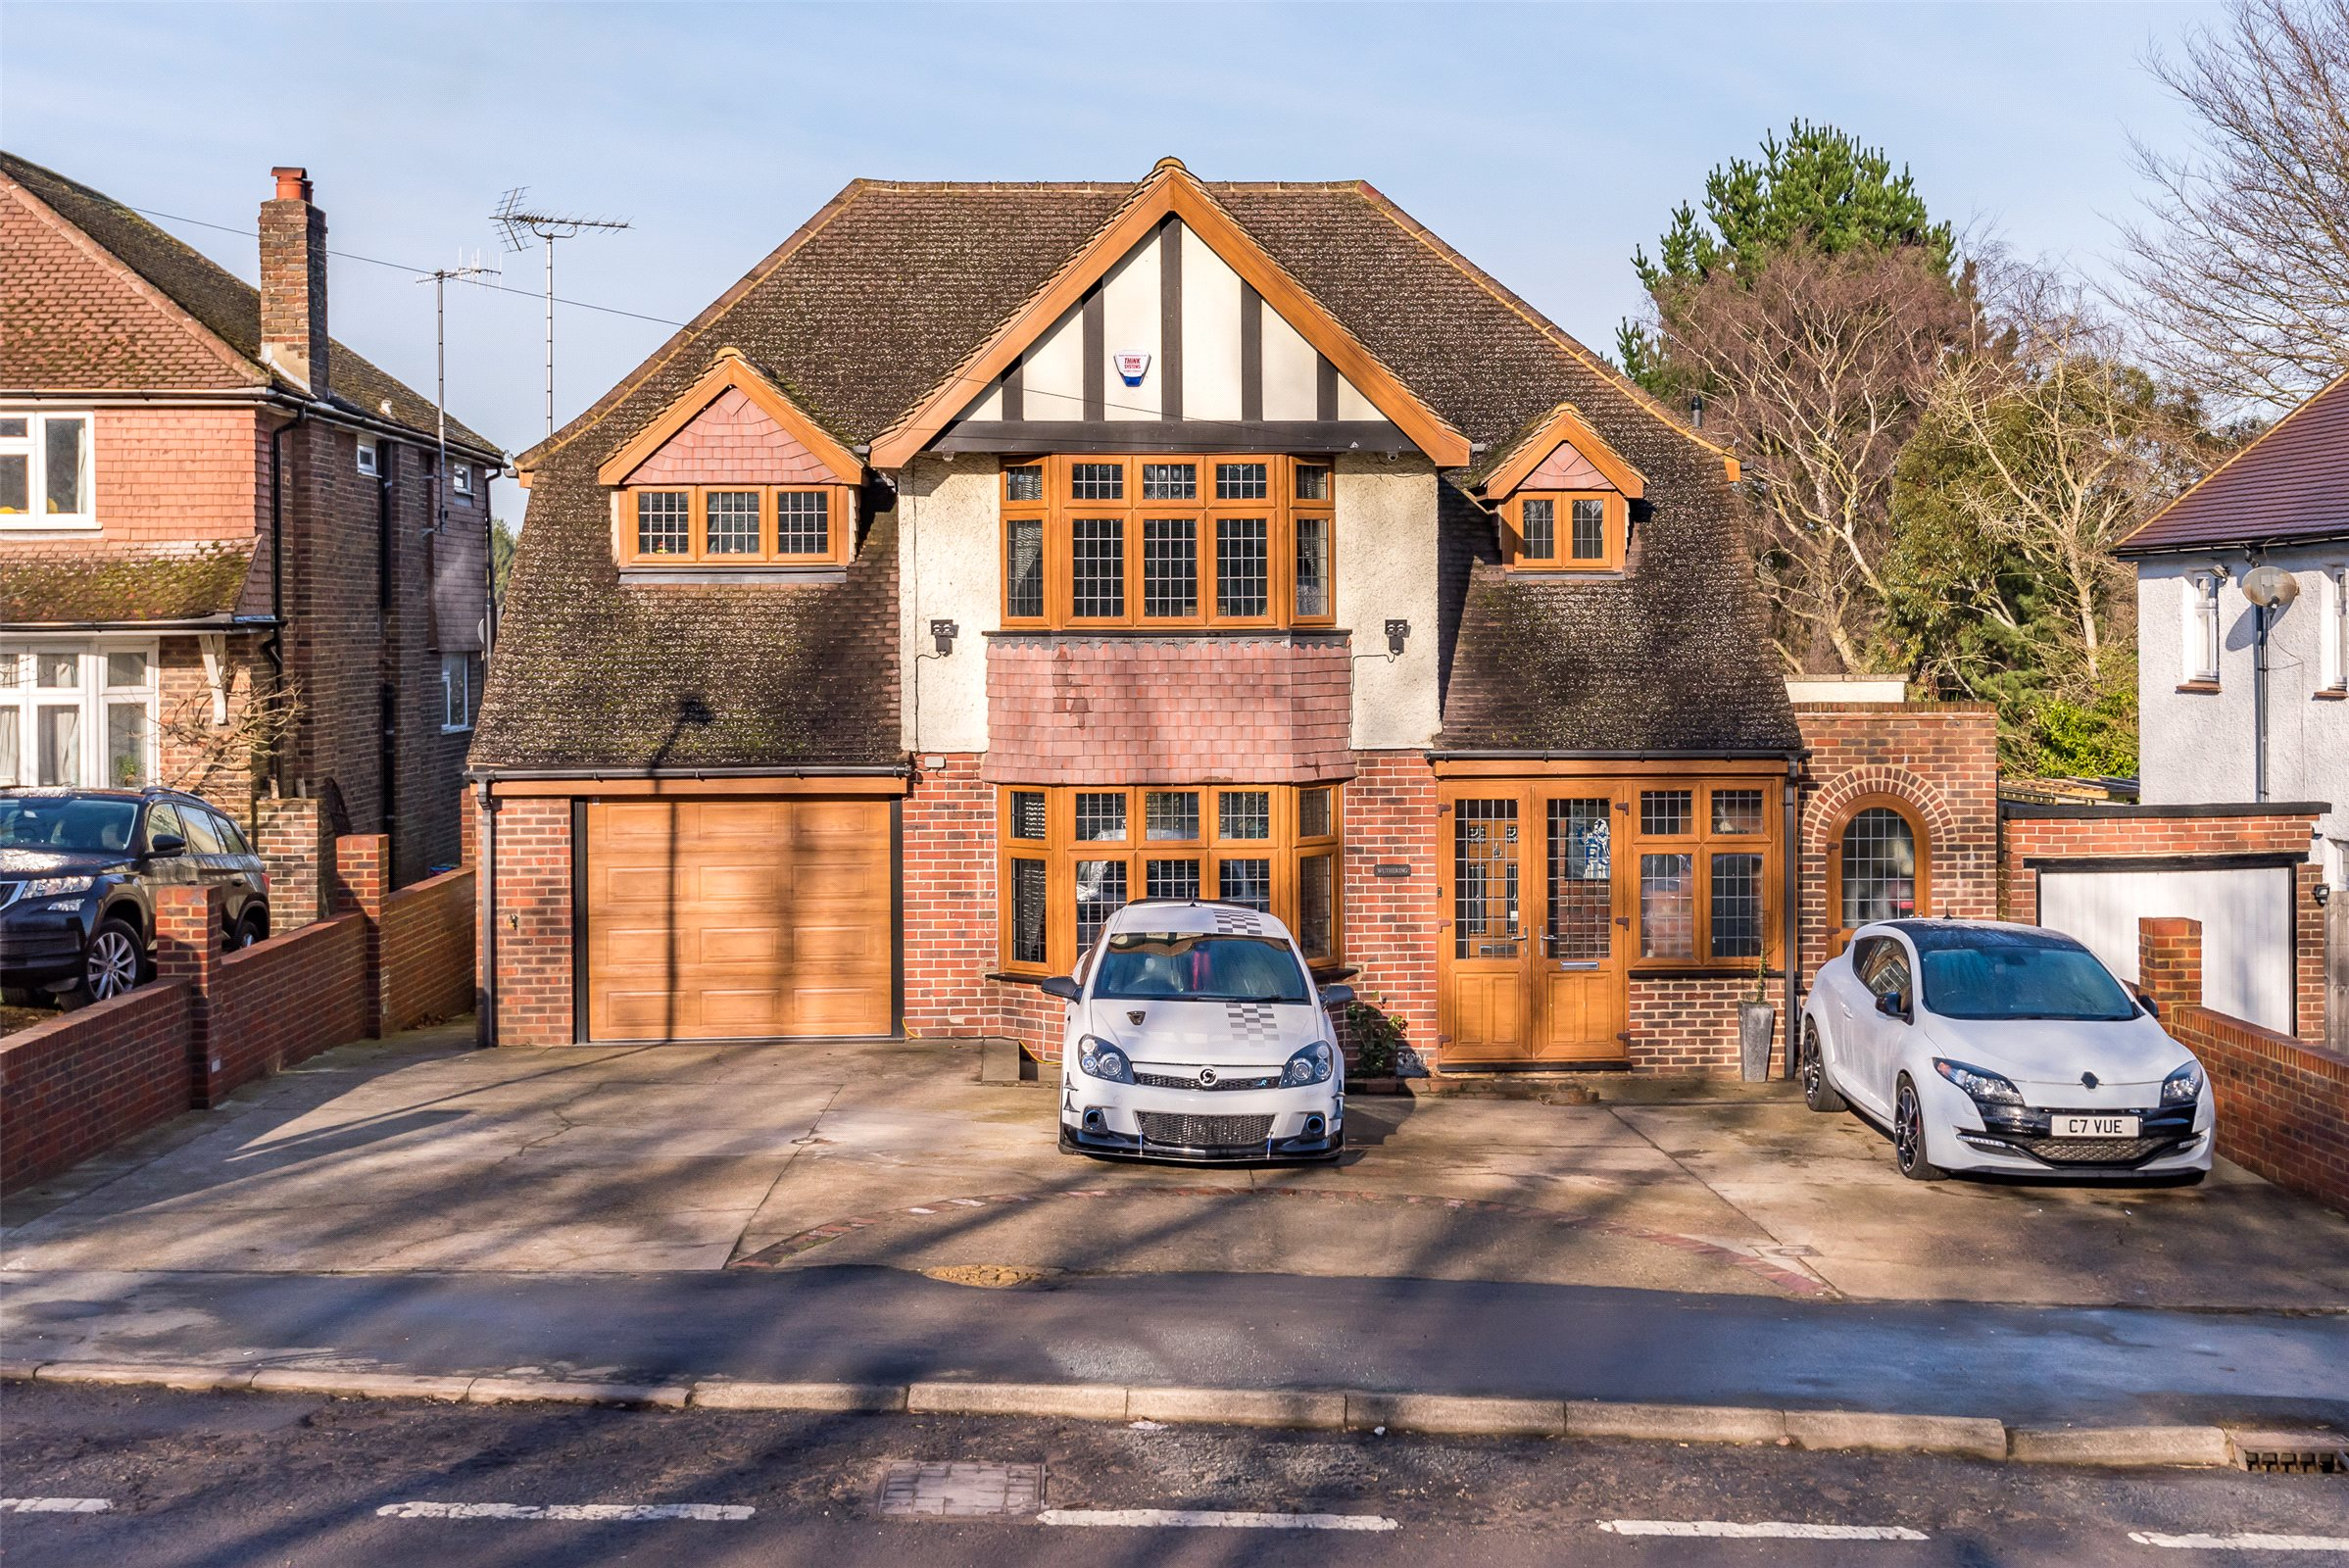 4 Bedrooms Detached House for sale in Godstone Road, Bletchingley, Redhill, Surrey, RH1